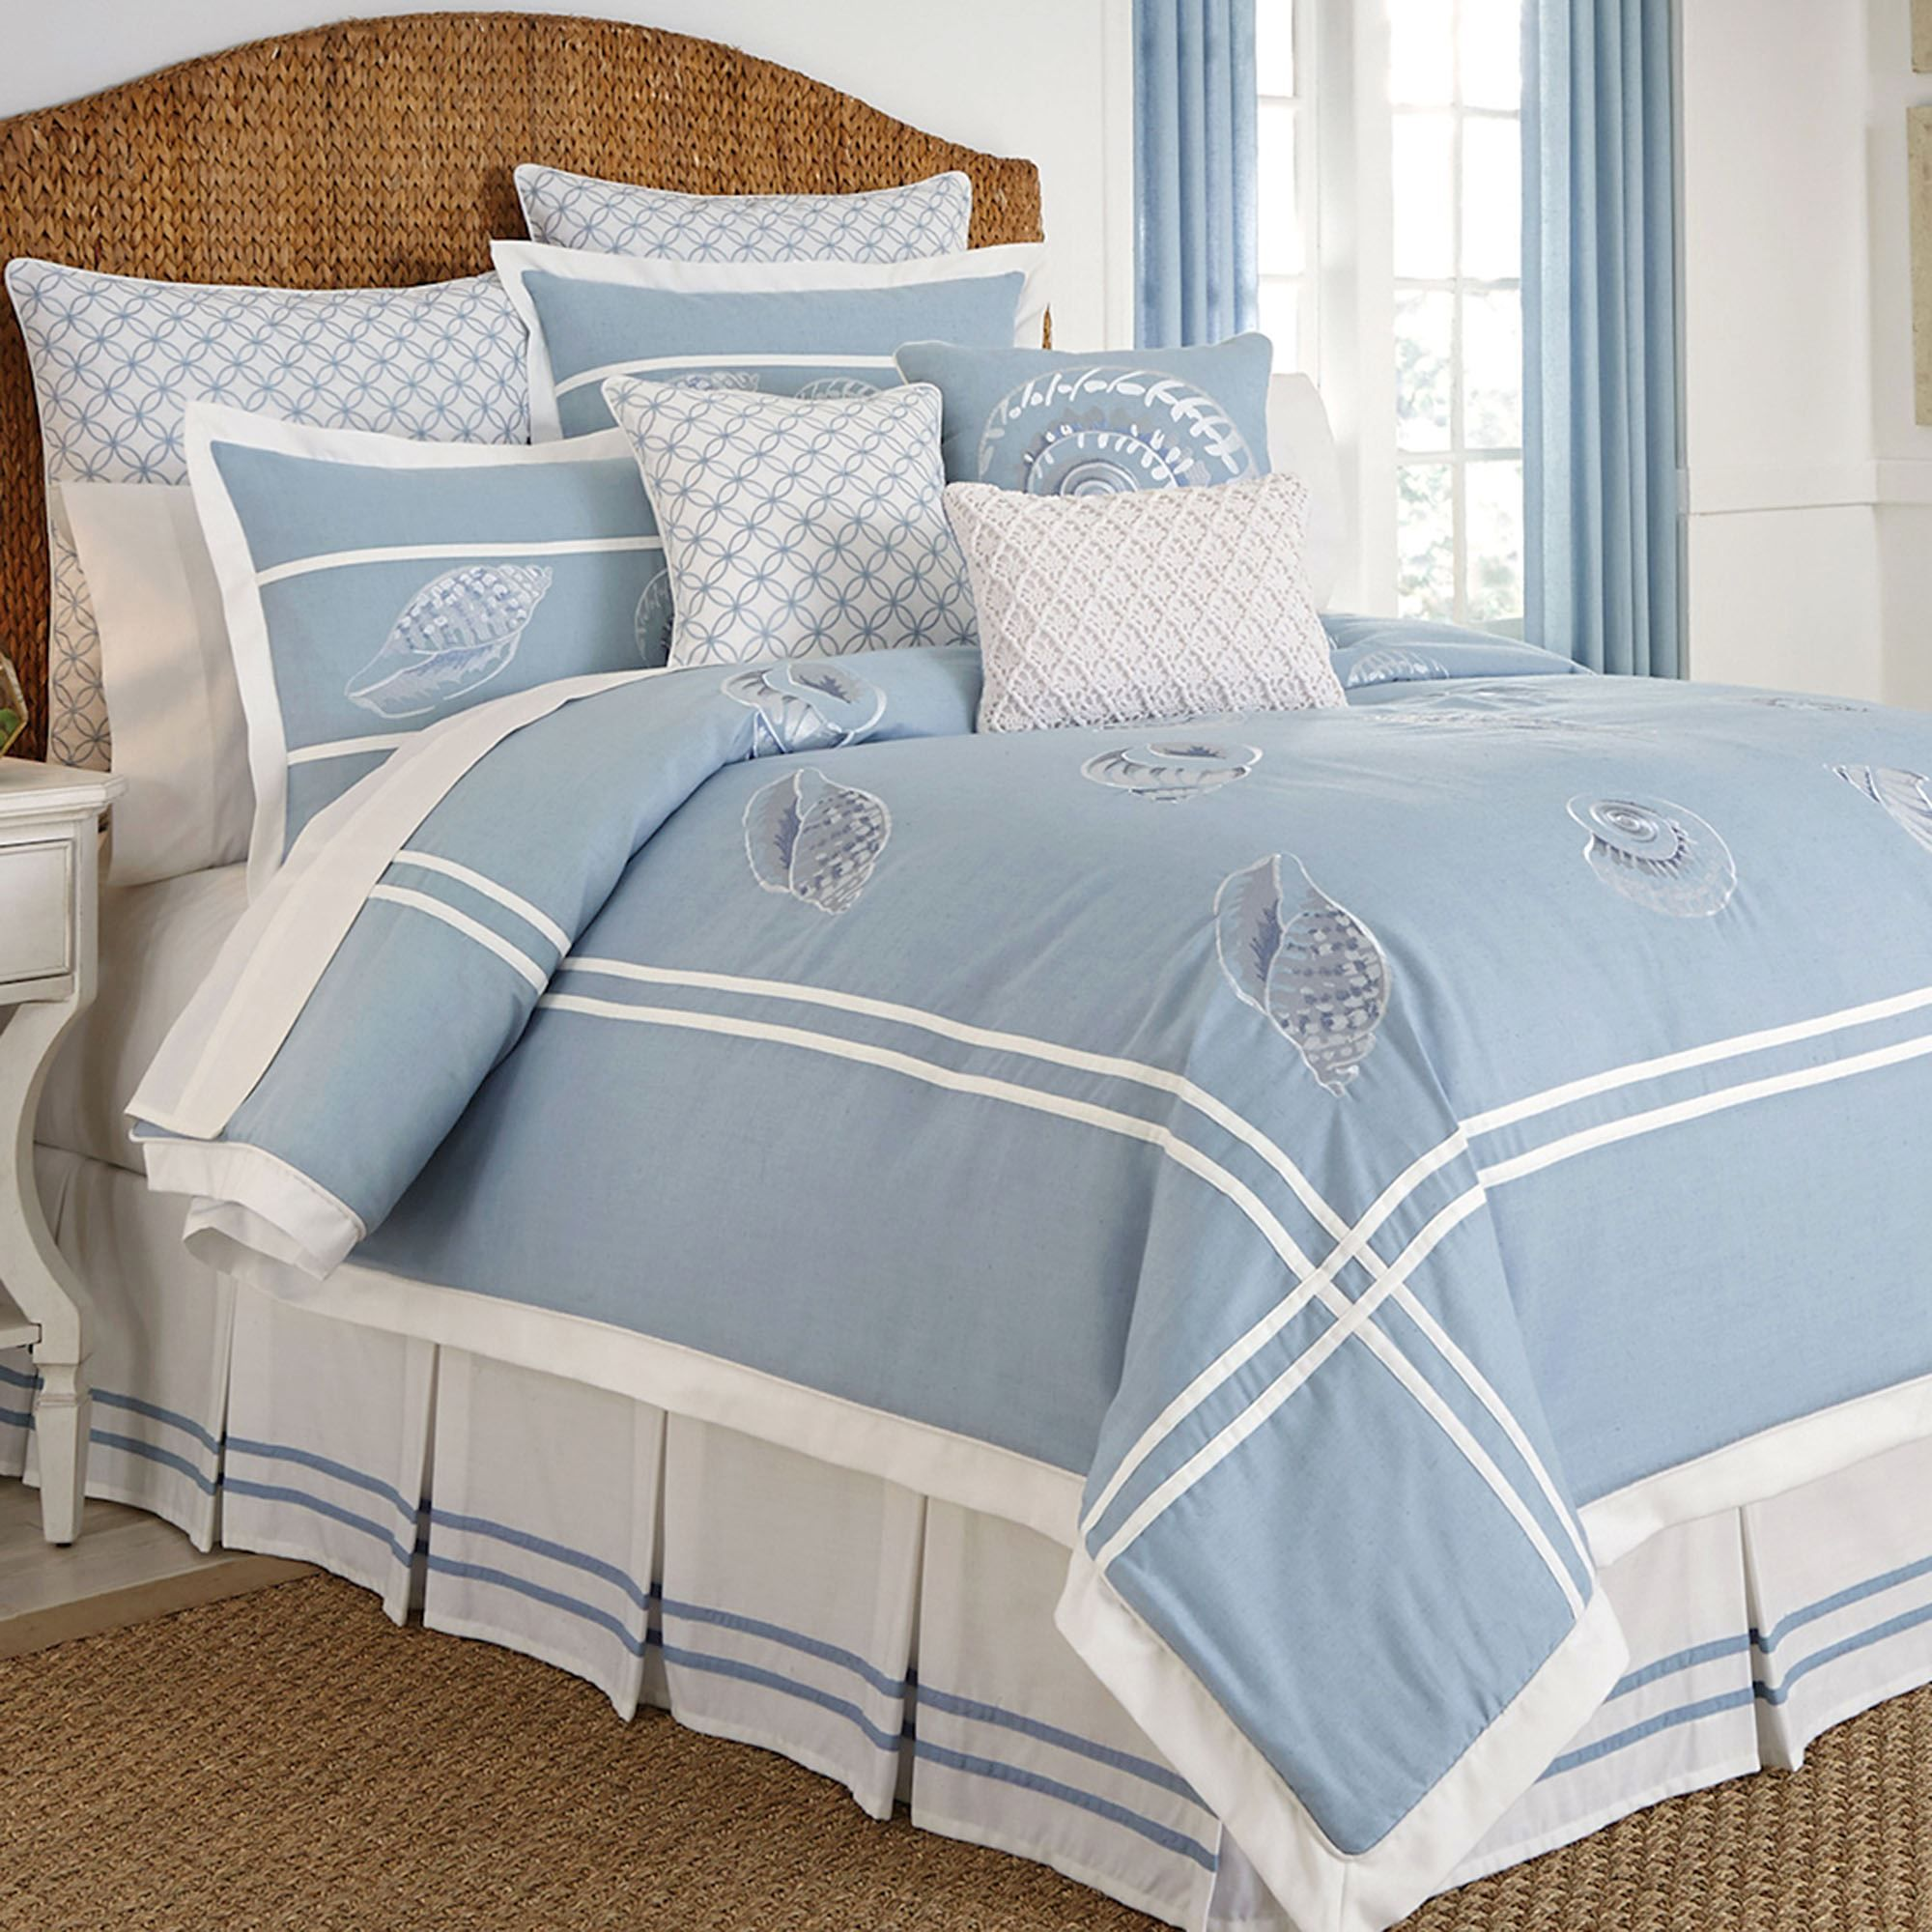 beach duvet surfside and decor tommy stripe joss at sets comforter bahama main set pin